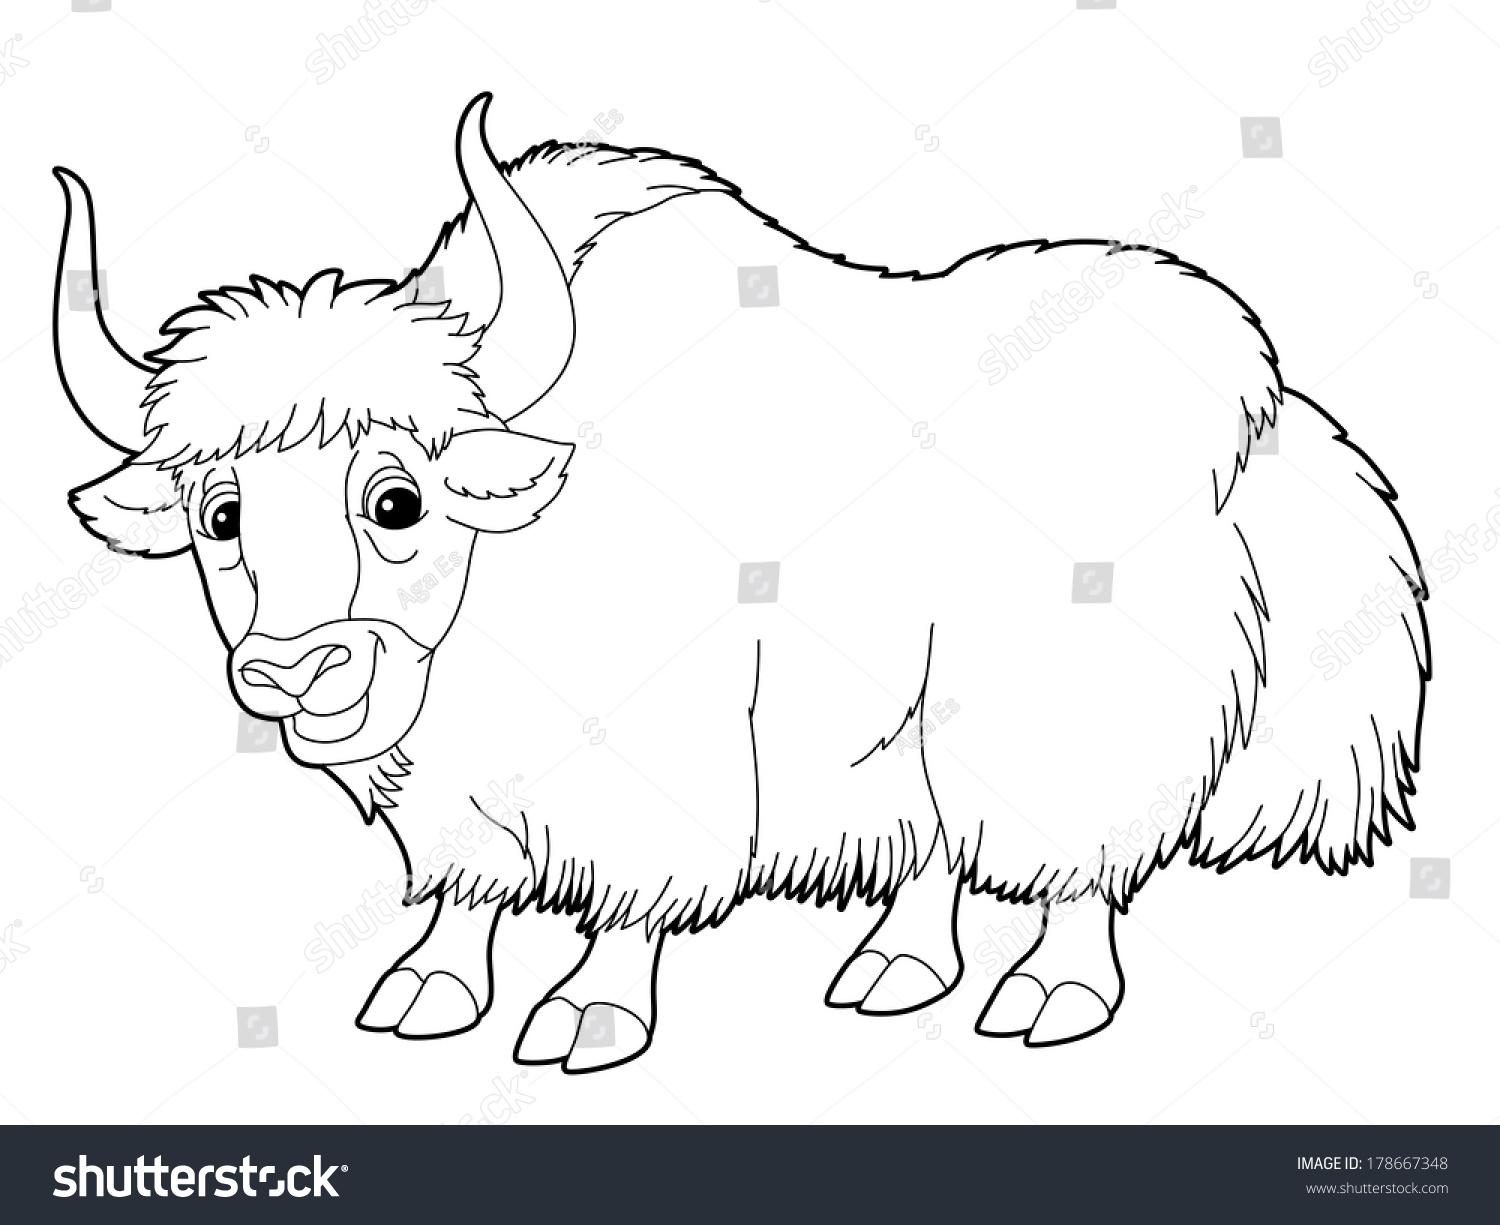 wildlife coloring pages - stock photo cartoon animal yak coloring page illustration for the children